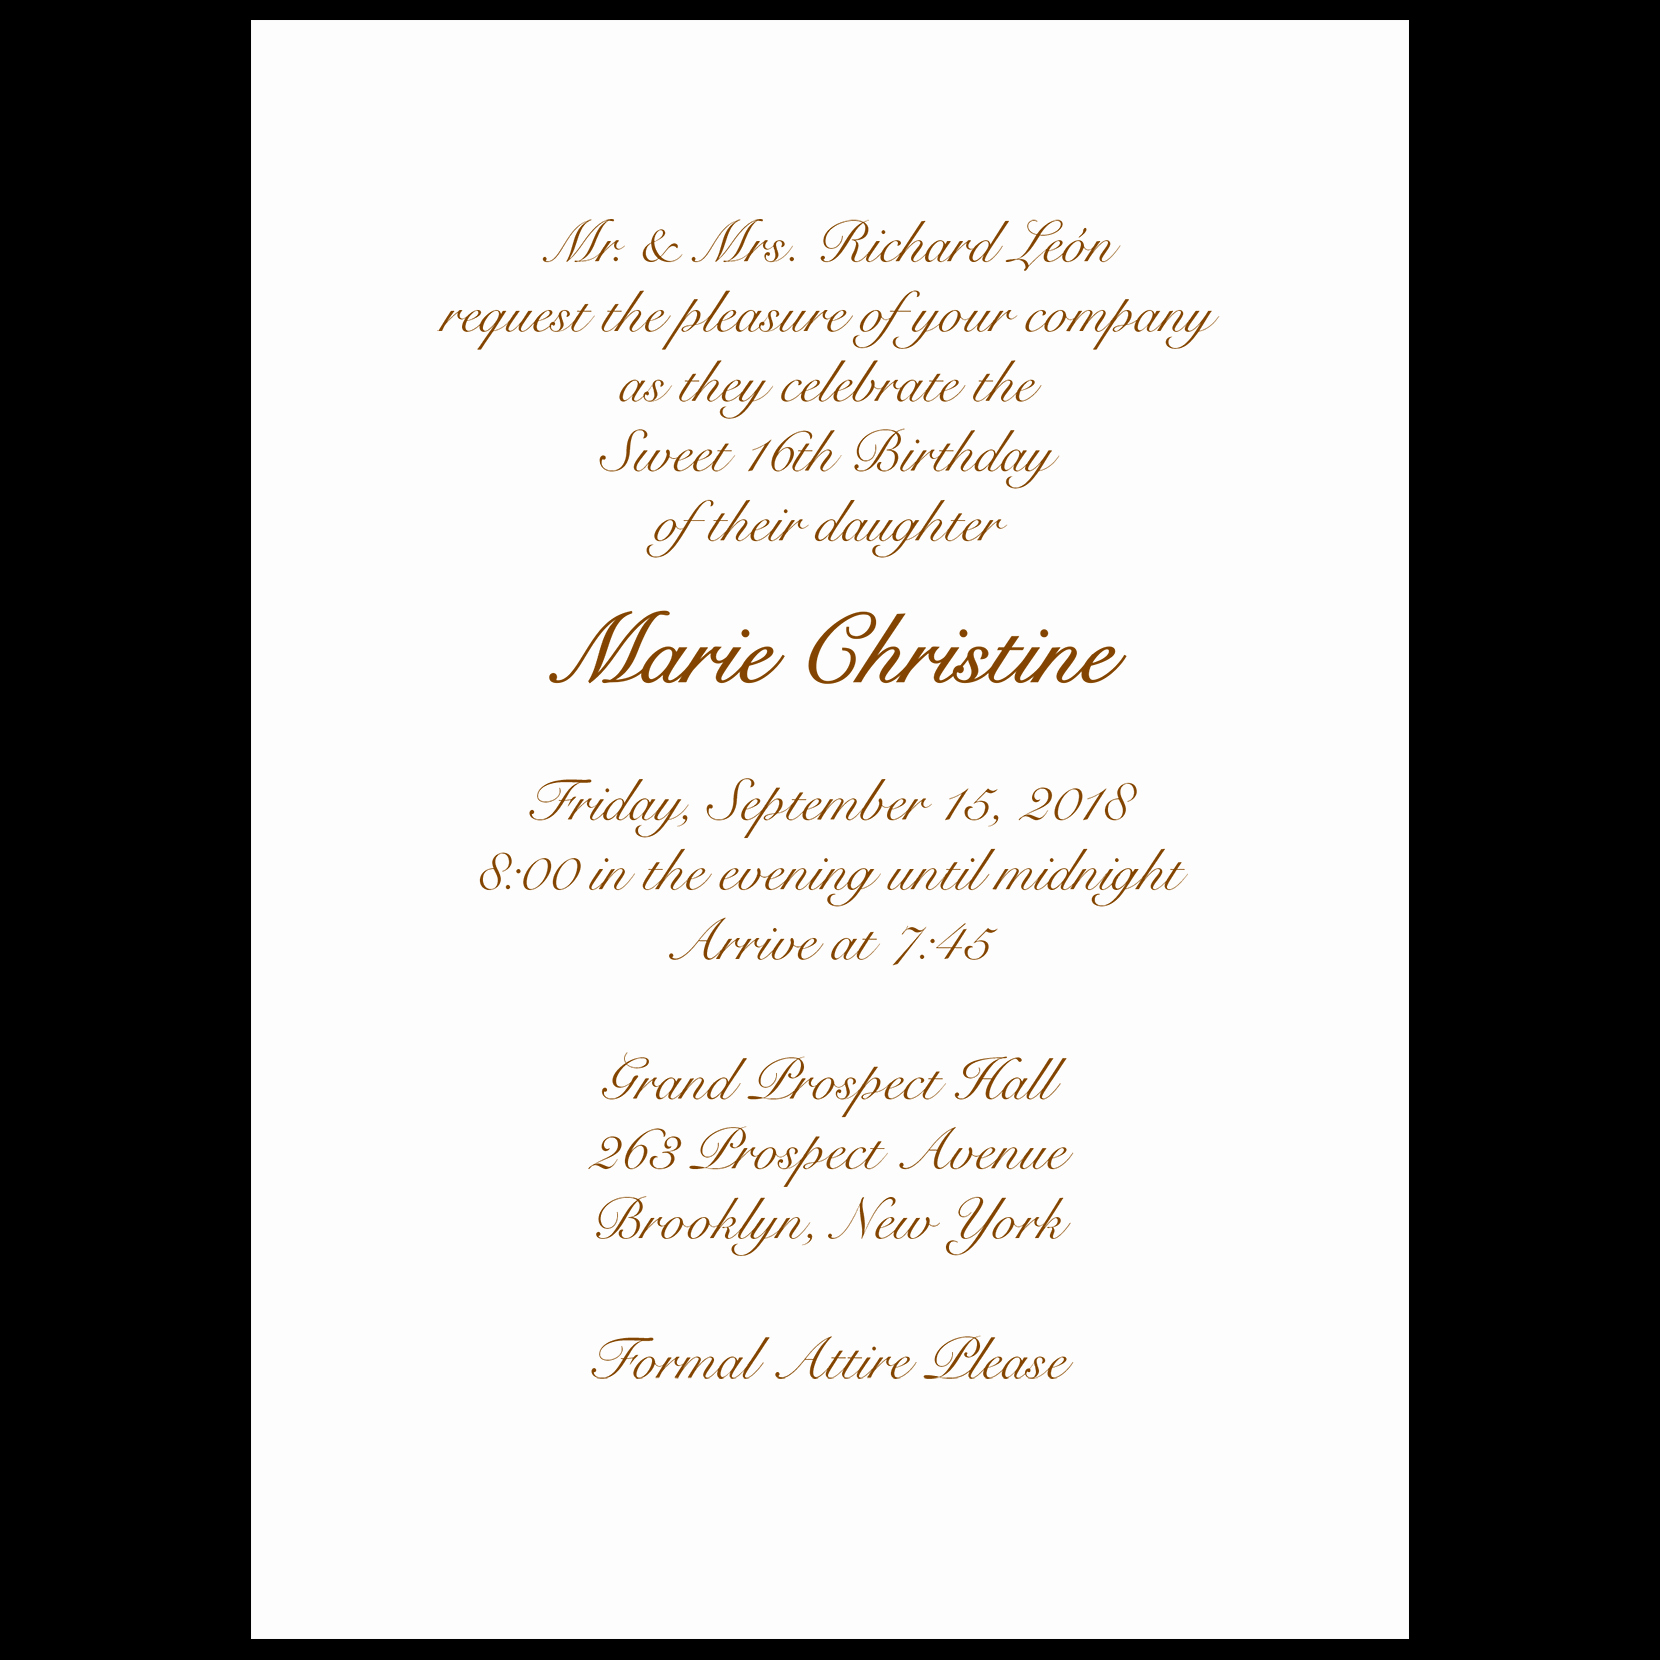 Sweet 16 Invitation Wording Awesome Sweet Sixteen Invitation Style 1 Sample A ⋆ Ipv Studio